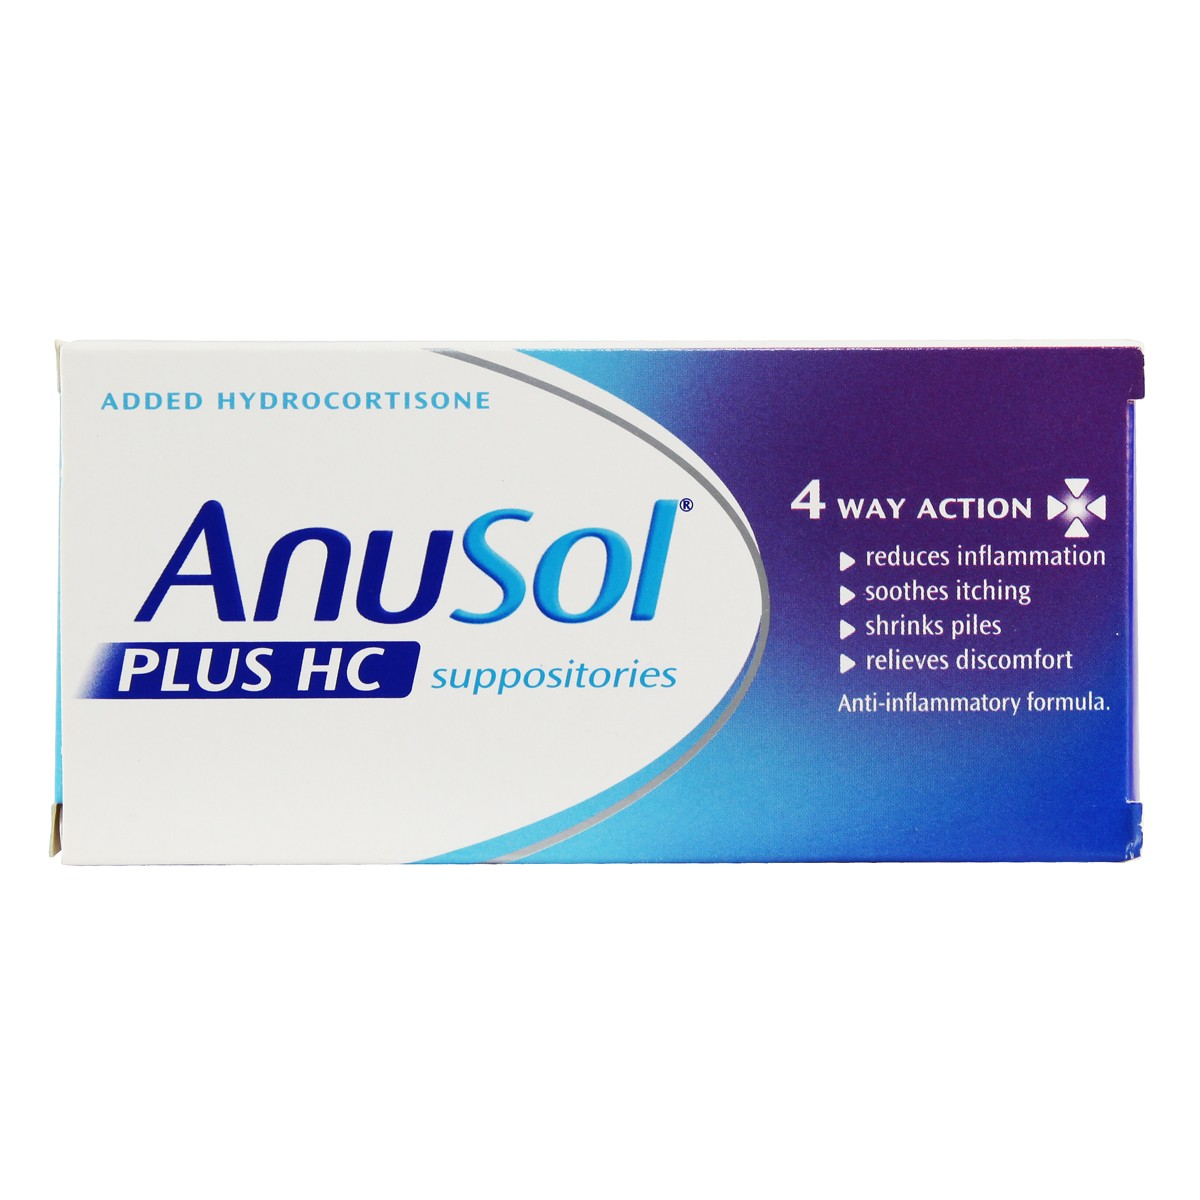 Anusol Plus HC Suppositories